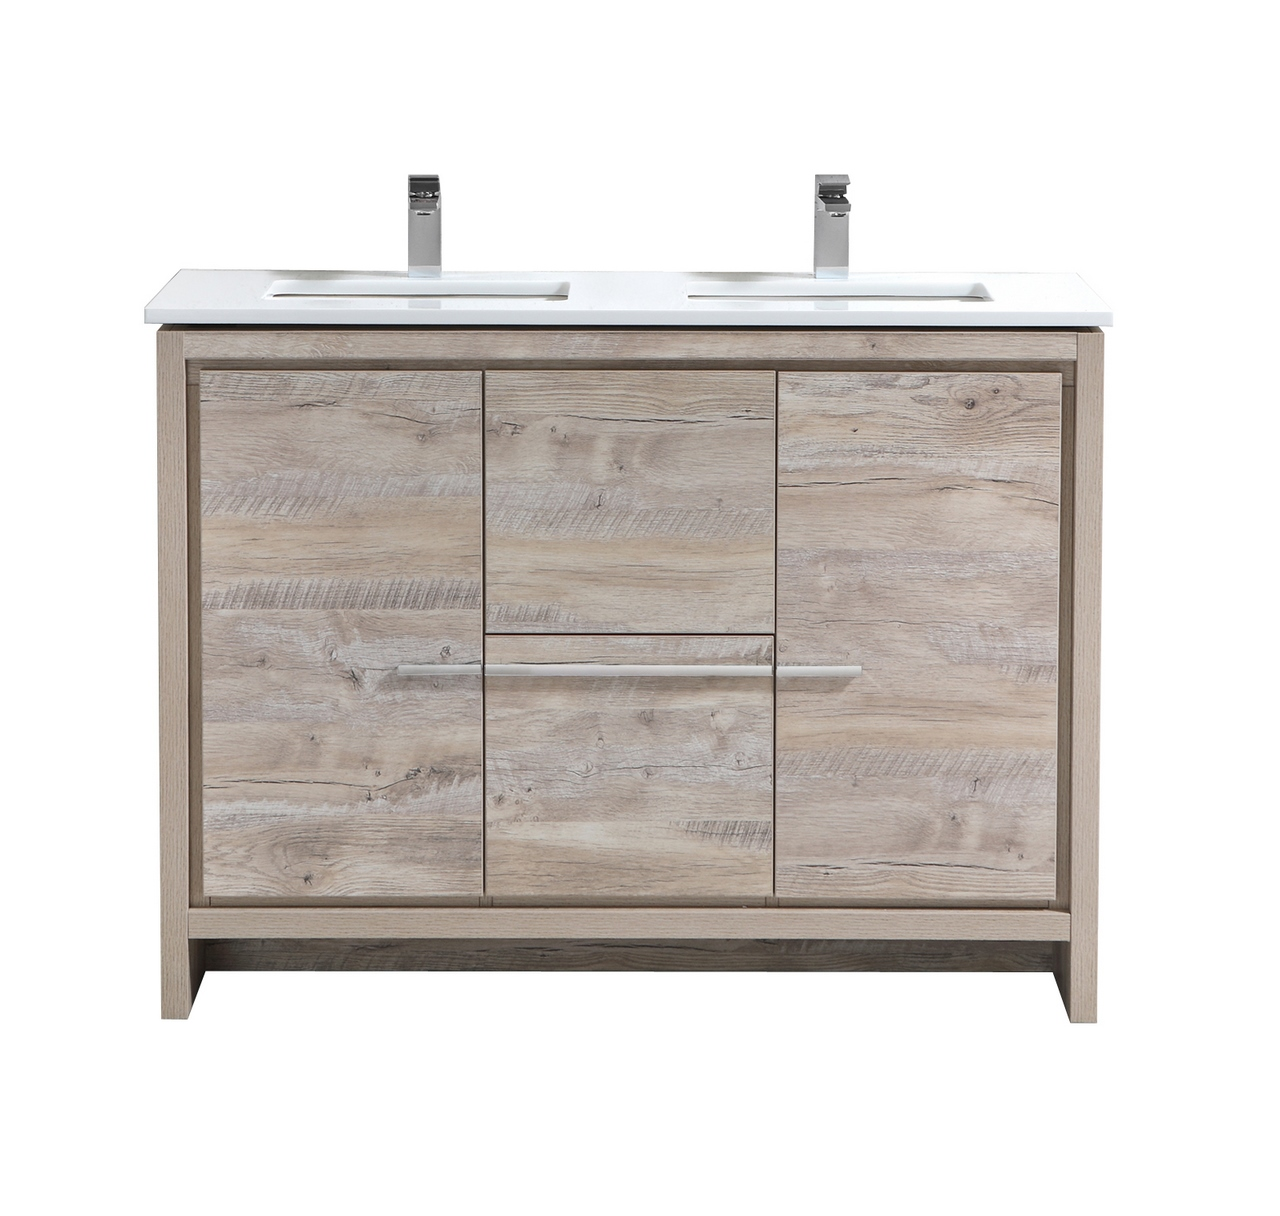 "Modern Lux 48"" Double Sink Nature Wood Modern Bathroom Vanity with White Quartz Counter-Top"